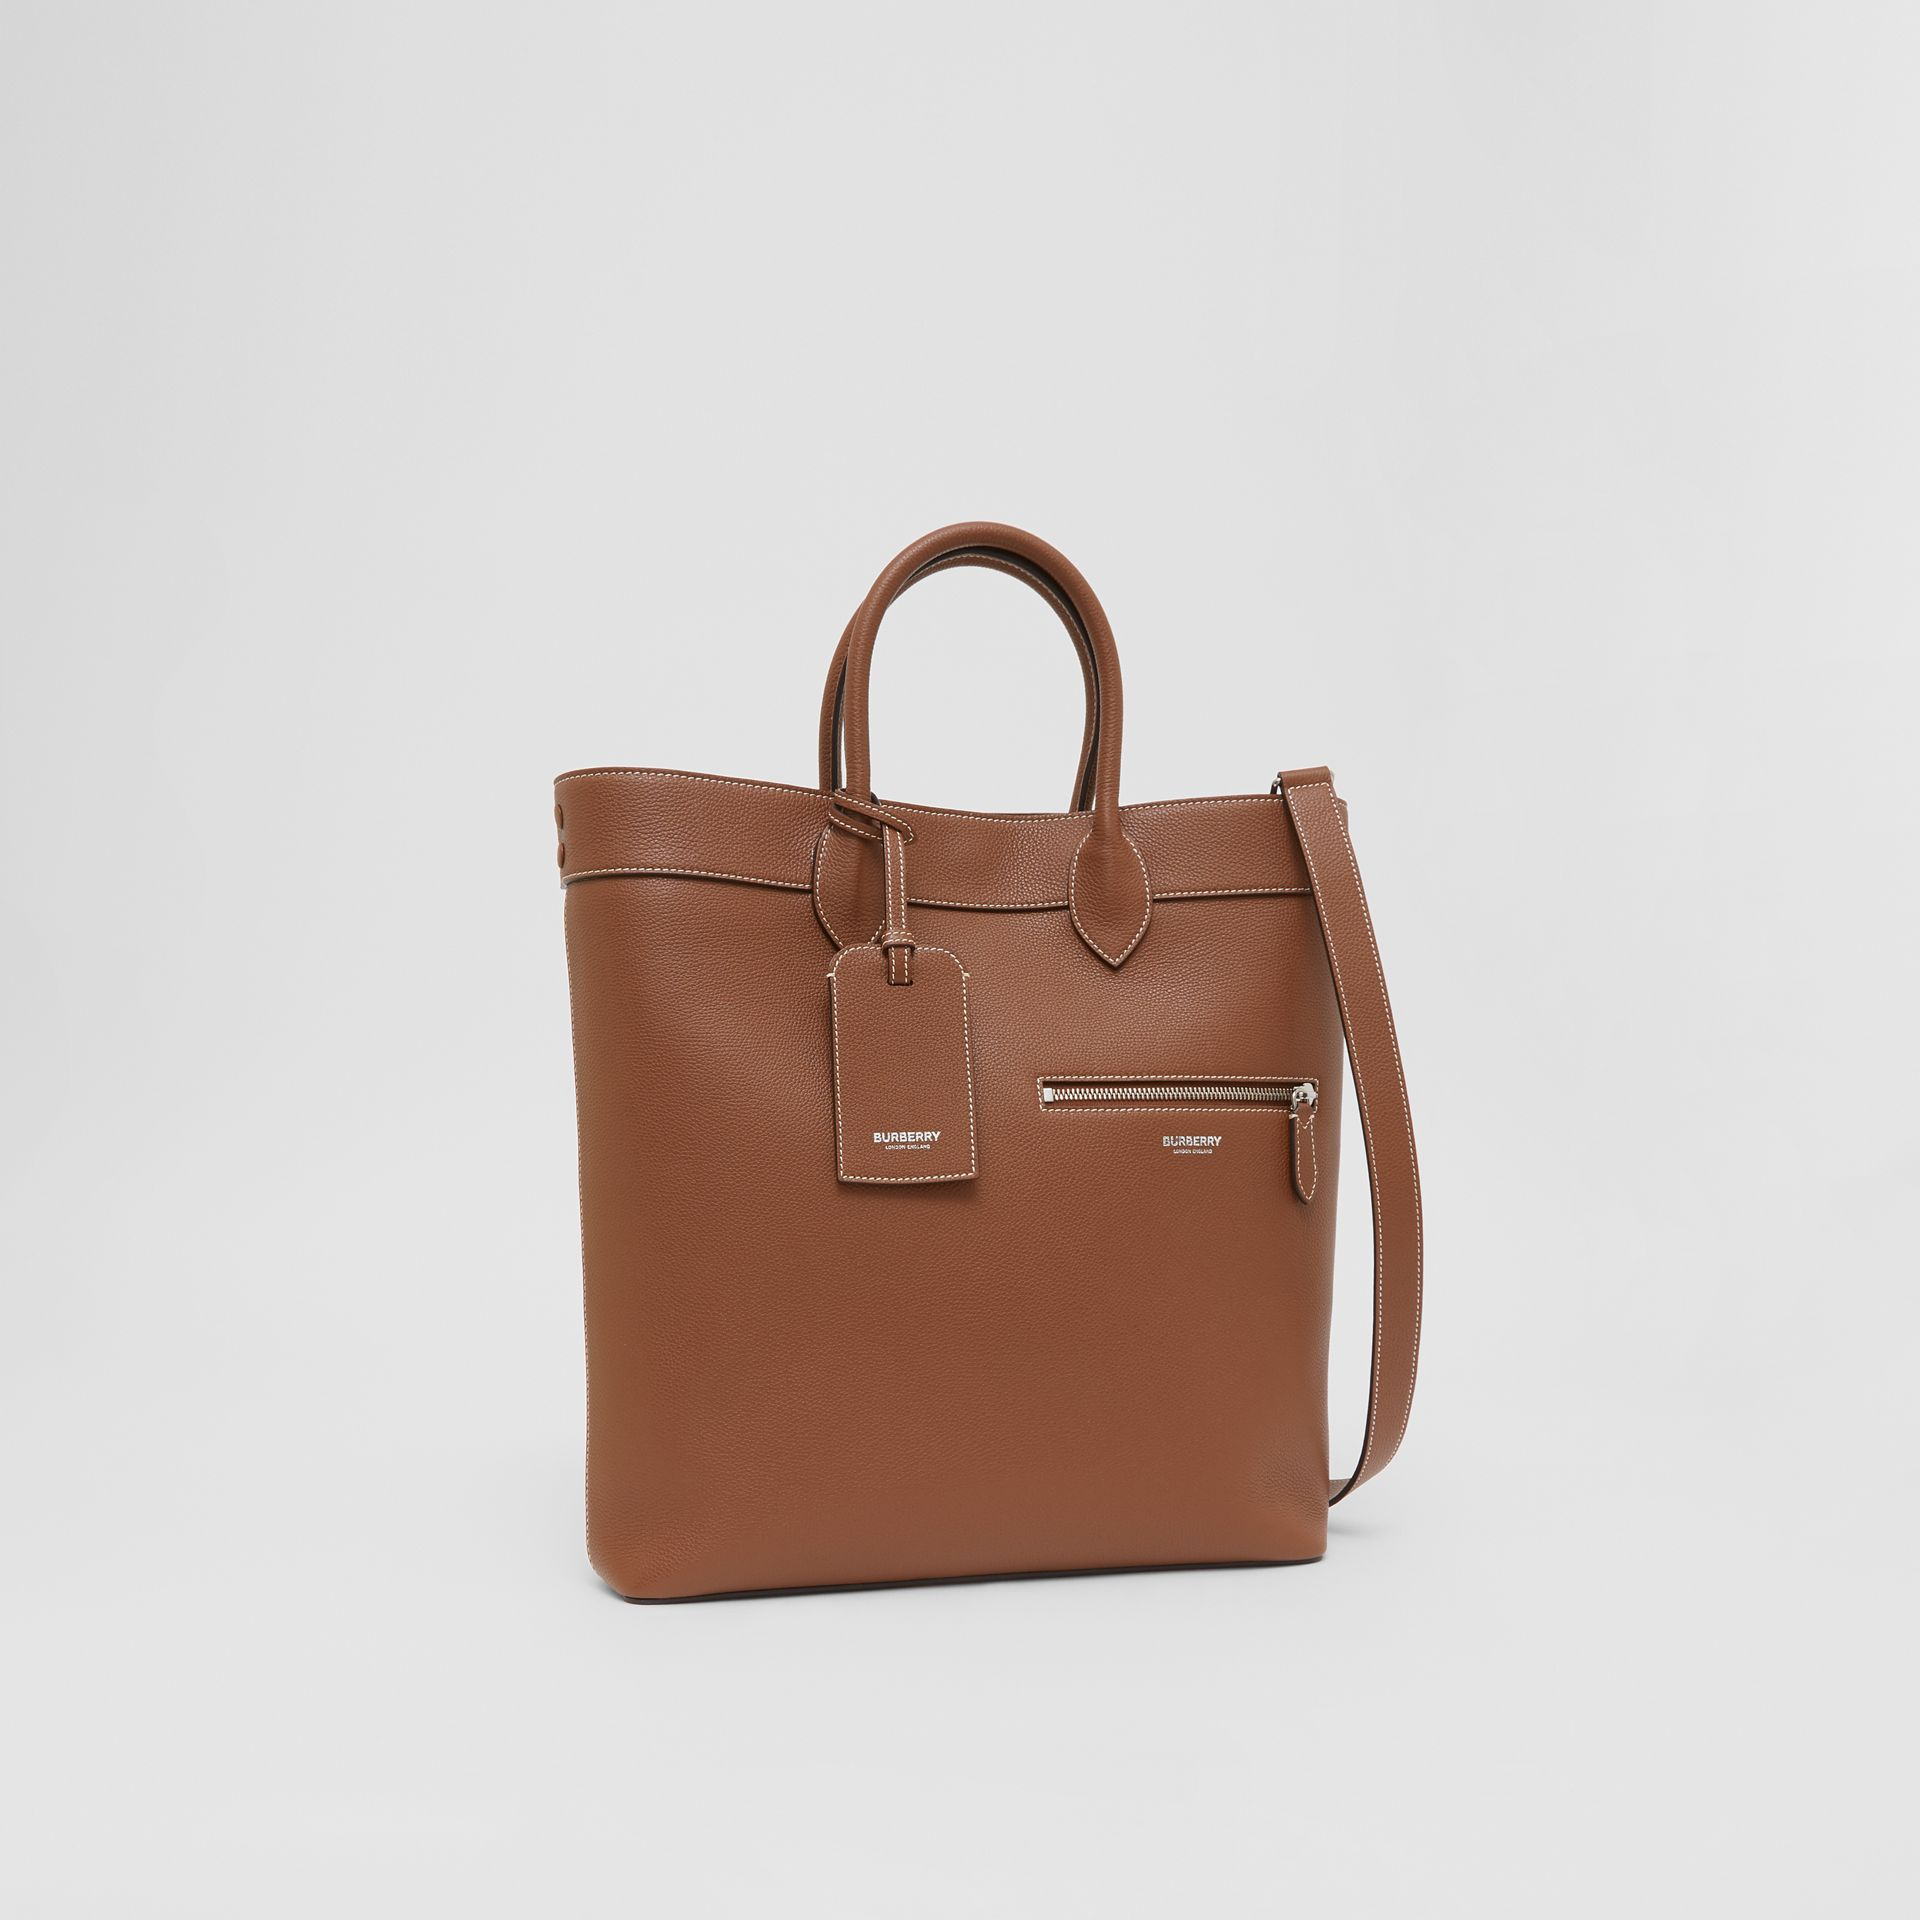 Grainy Leather Tote in Tan | Burberry - gallery image 8